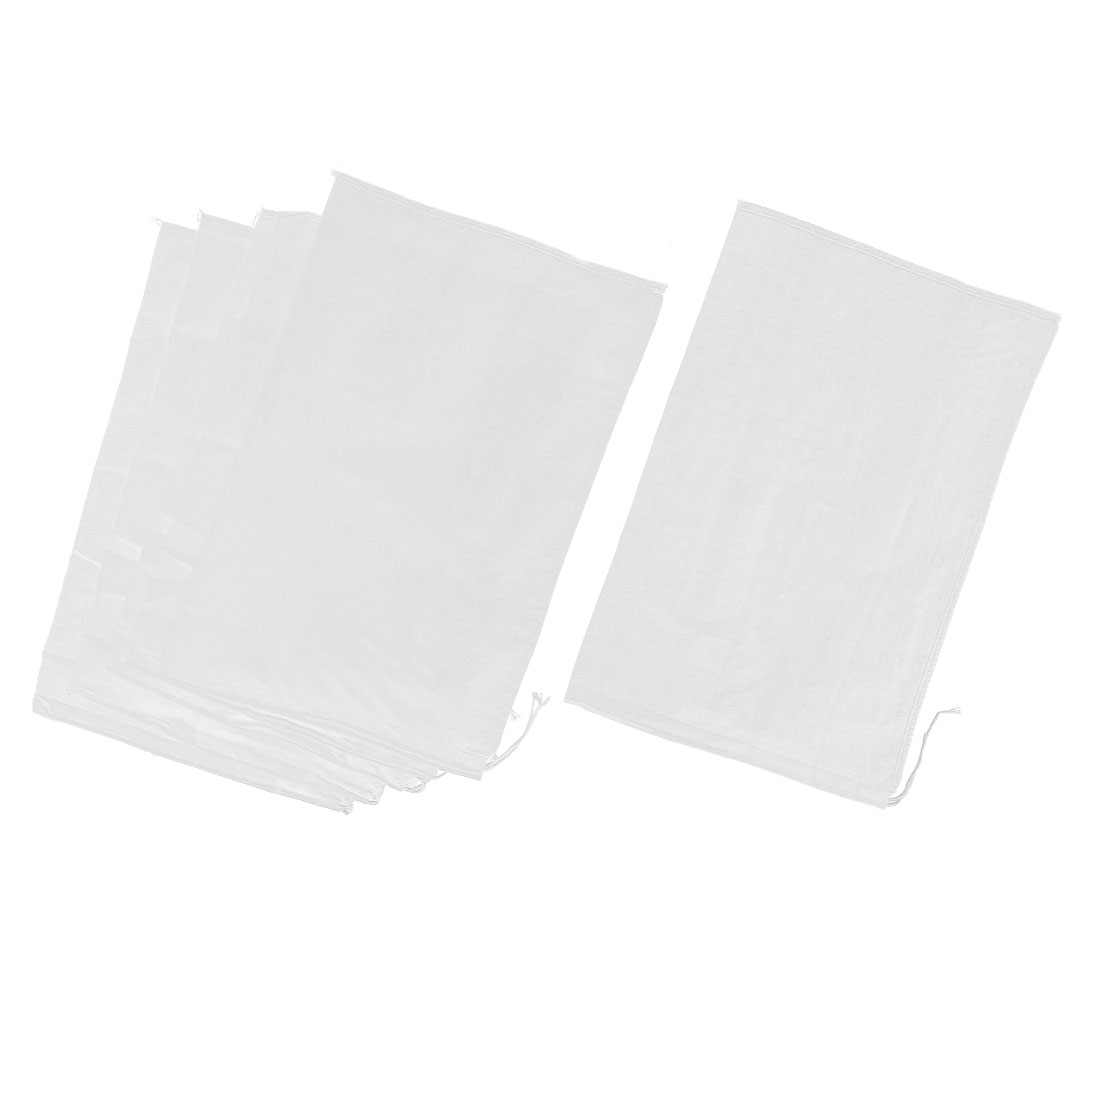 6 Pcs Kitchen Drawstring Seal Soup Food Filter Mesh Bag 17 Inch x 11 Inch